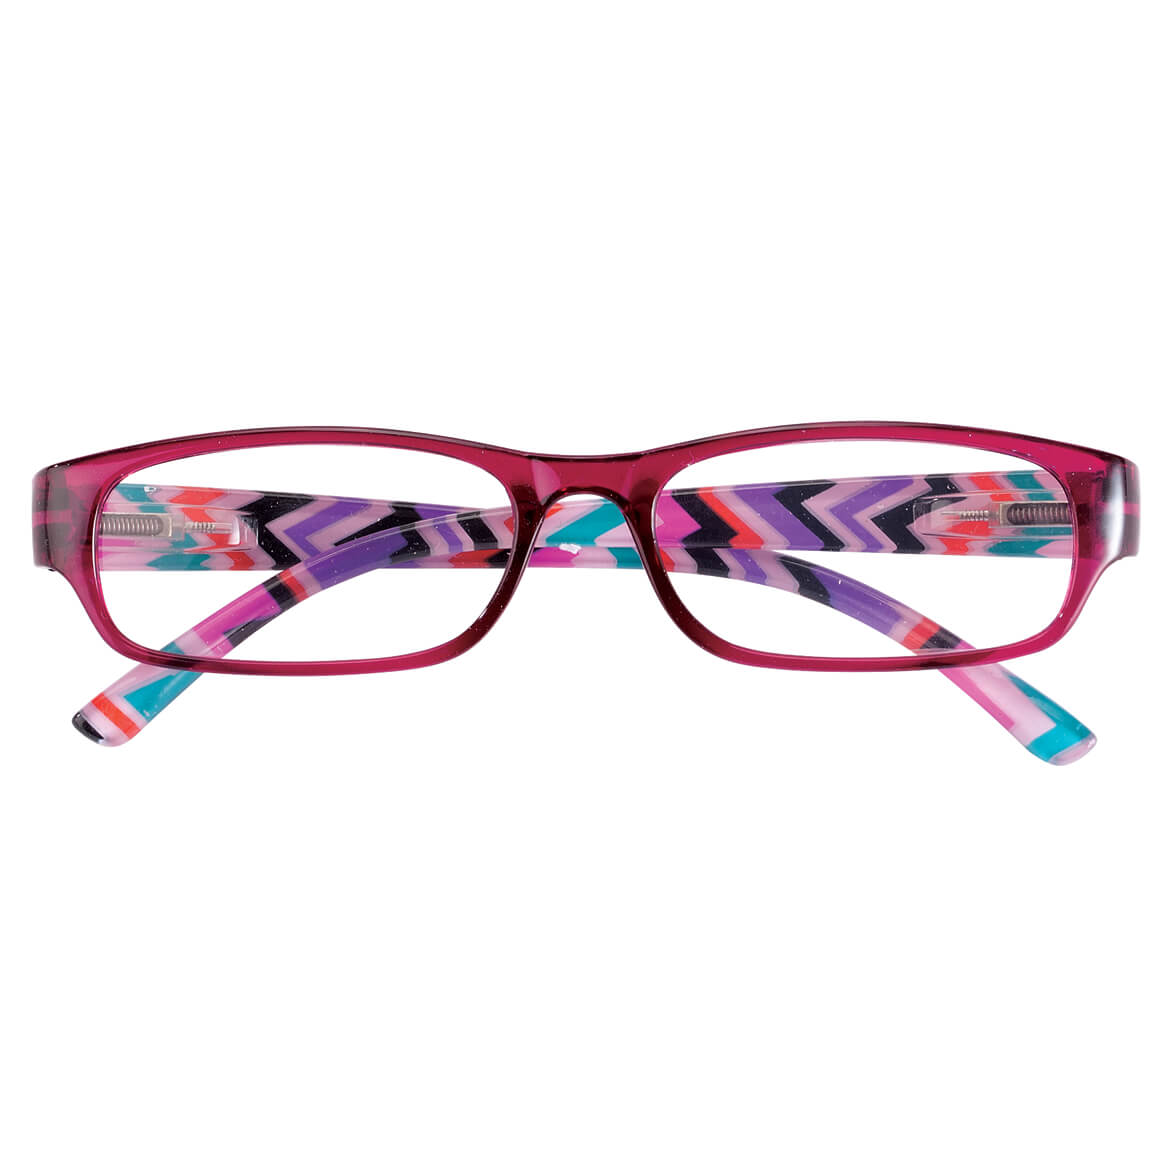 3 Pack Women's Reading Glasses-358532